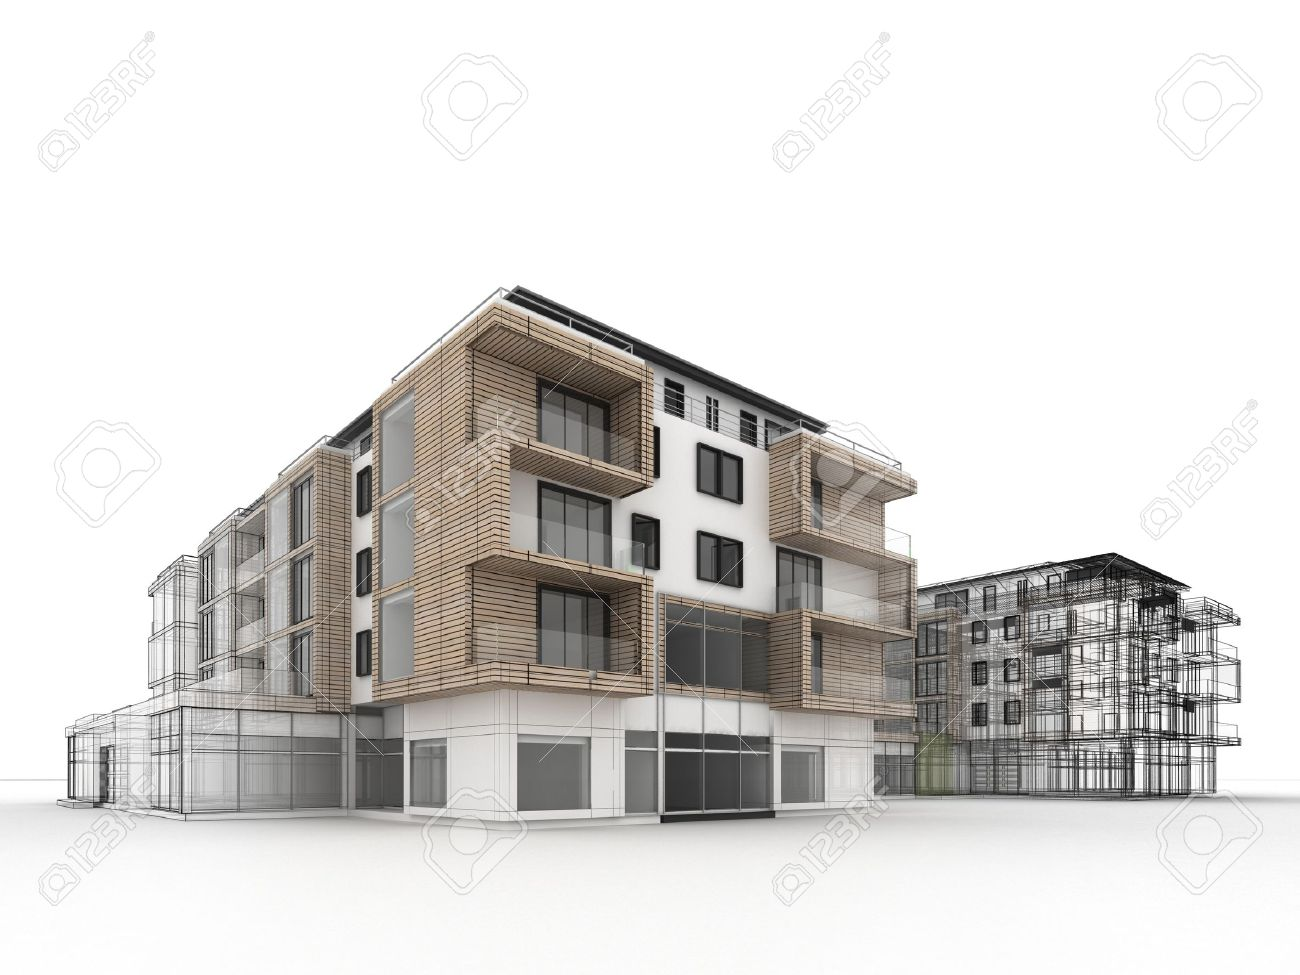 Apartment Building Design Progress Architecture Visualization In Mixed Drawing And Photo Realistic Style Stock